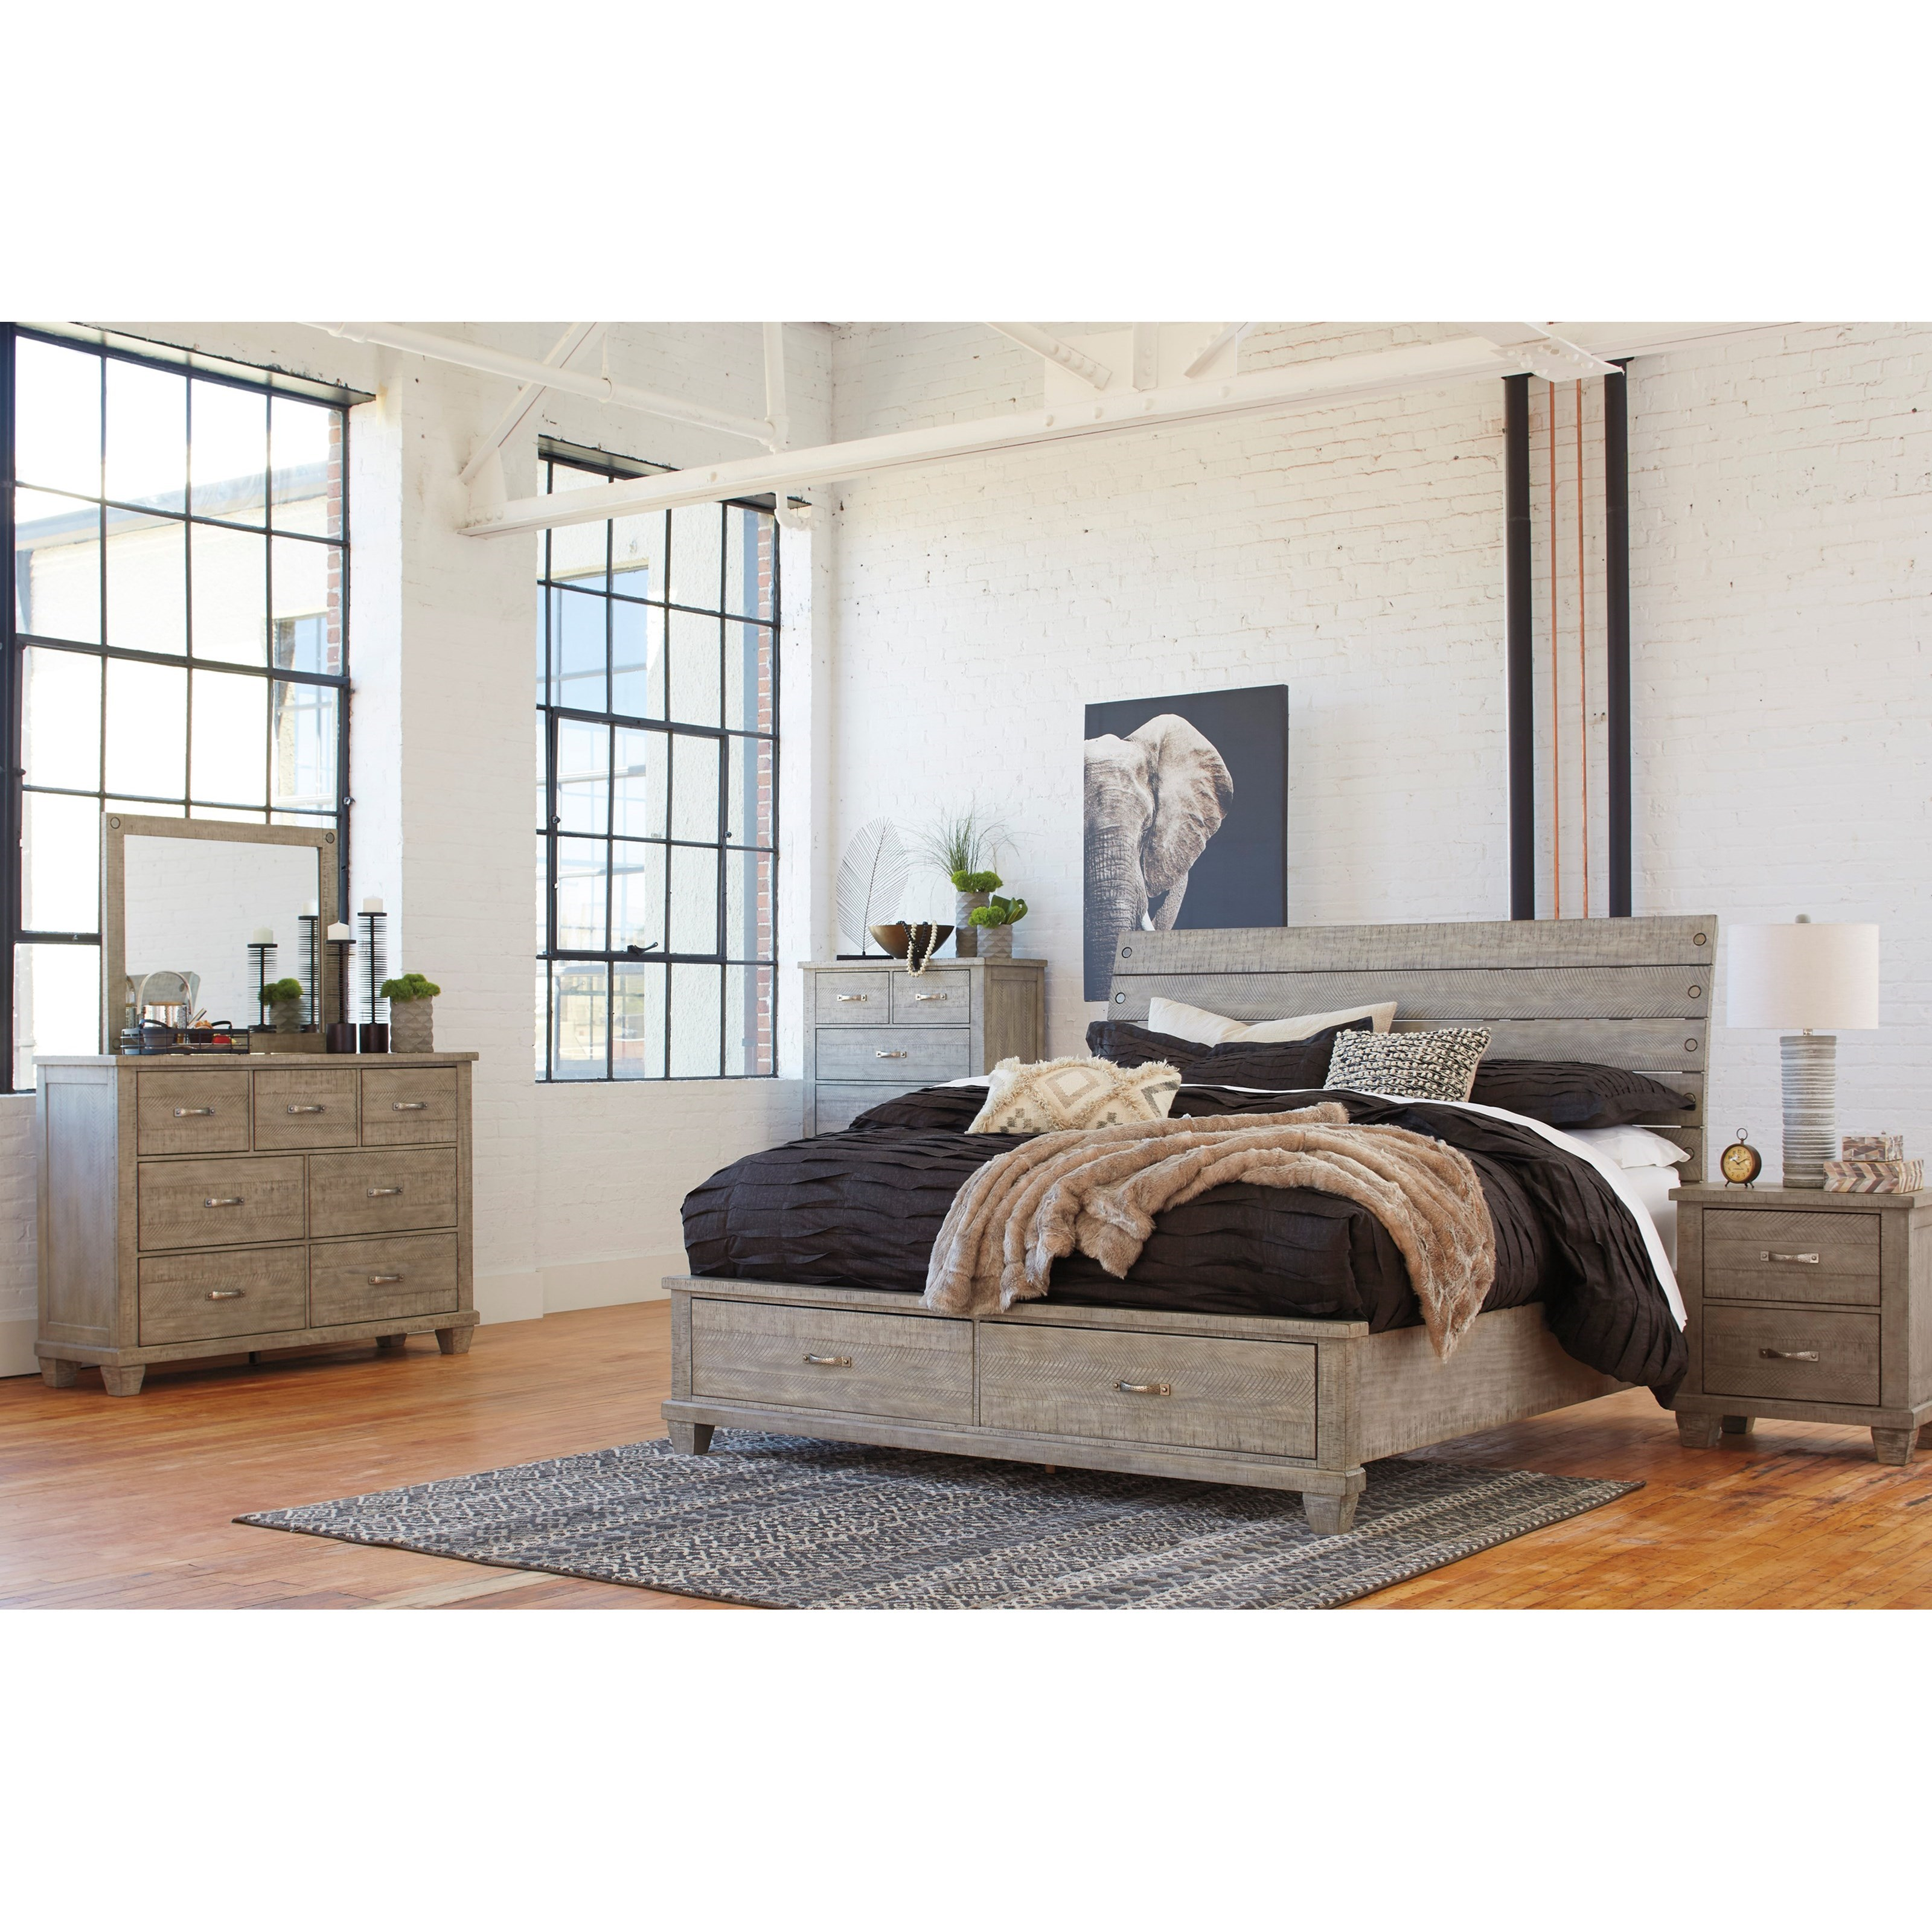 Naydell Queen Bedroom Group by Benchcraft at Virginia Furniture Market